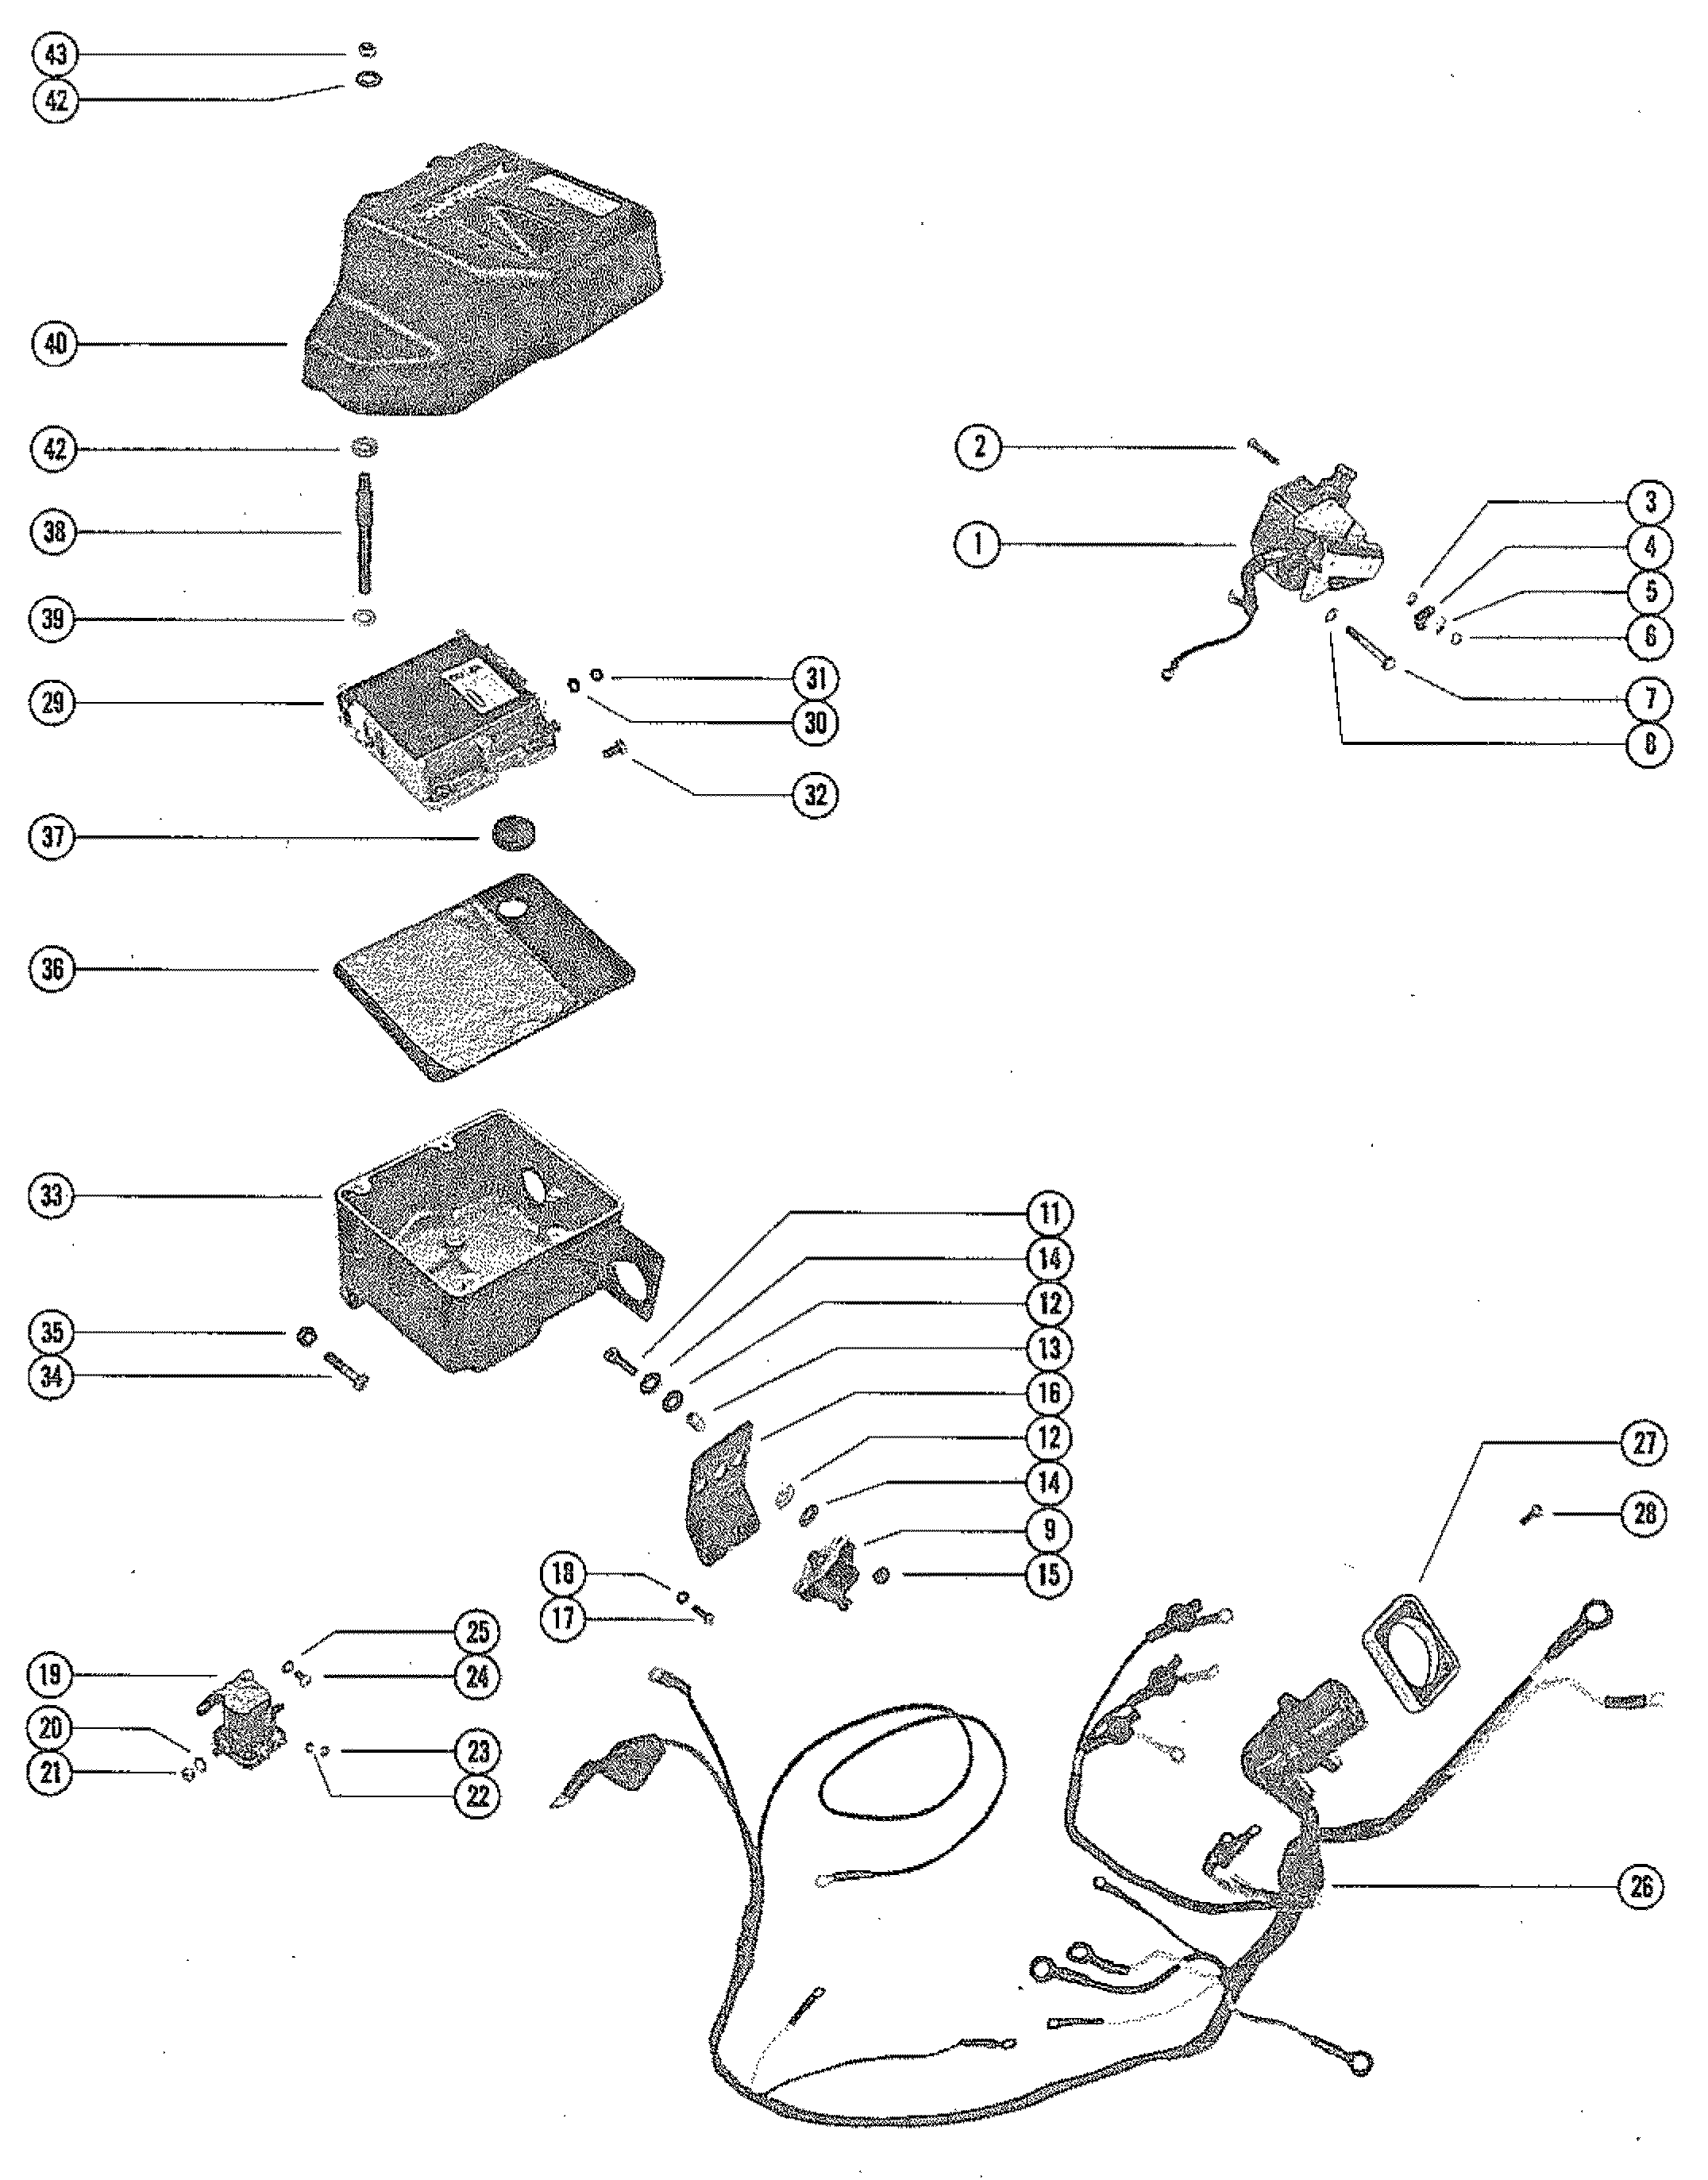 A8 1997 mercruiser 454 wiring diagram mercruiser cooling system mercruiser wiring harness at eliteediting.co